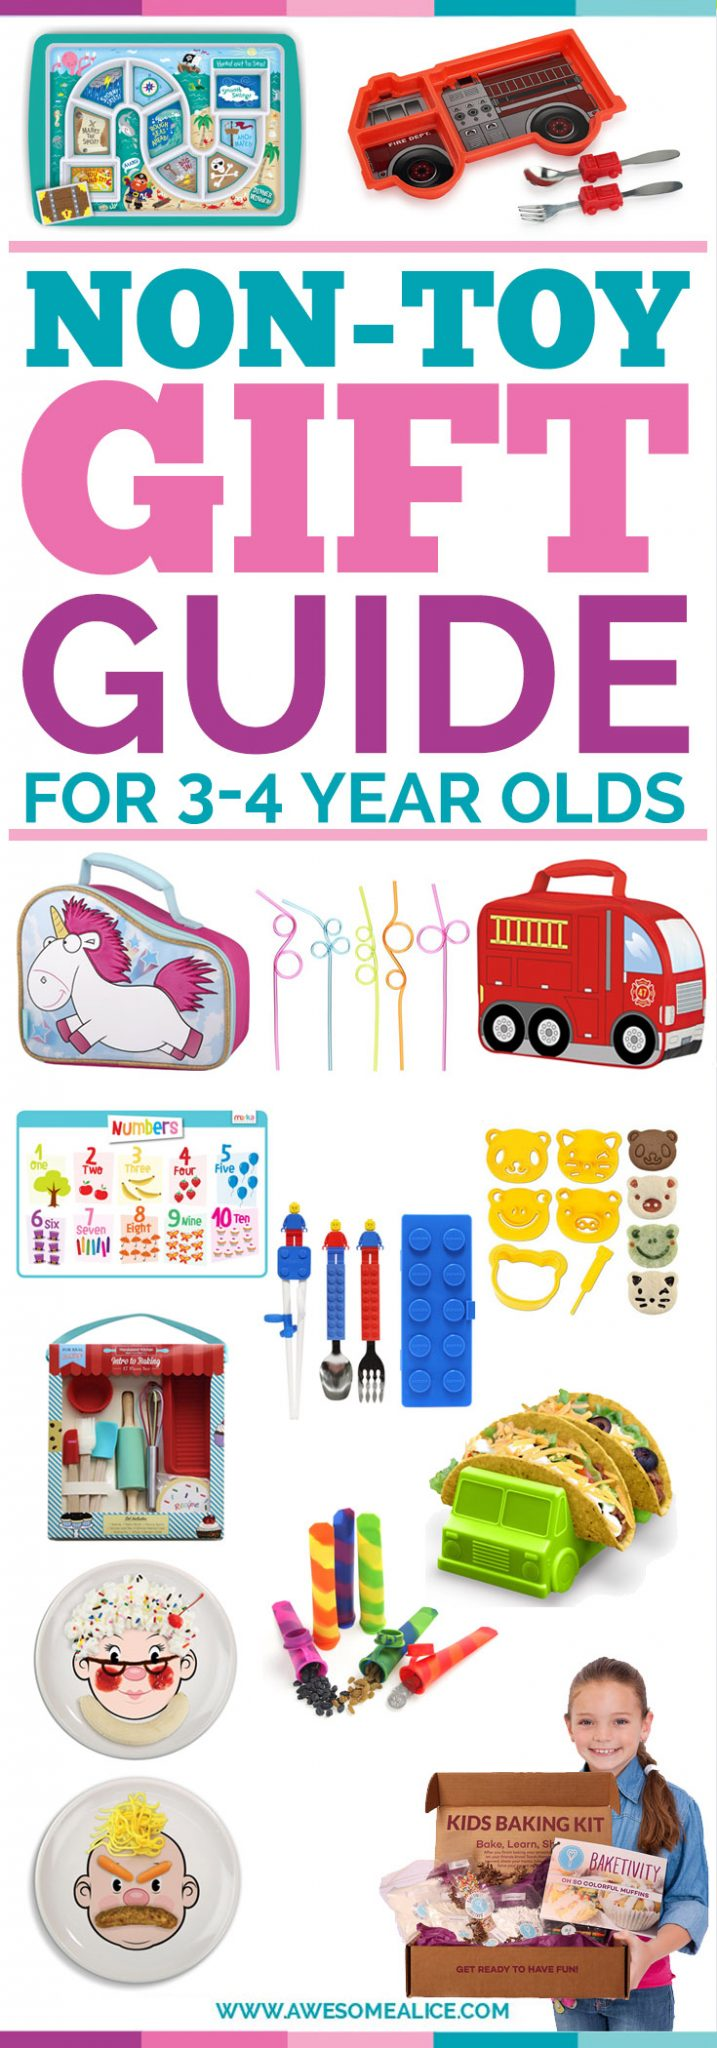 Gift Guide For Picky Eaters | Christmas Gifts For Kids | Perfect Christmas Gift For Five year olds | The Best Kids Feeding Products | The Best Gifts for Four Year Olds | Children Christmas Gift Guide | The Best Kids Gift Guide | Holiday Gifts For Kids | #giftguide #pickyeater #kids #non-toys #musthaveproducts #bestproducts #ChristmasGifts #Christmas | www.awesomealice.com